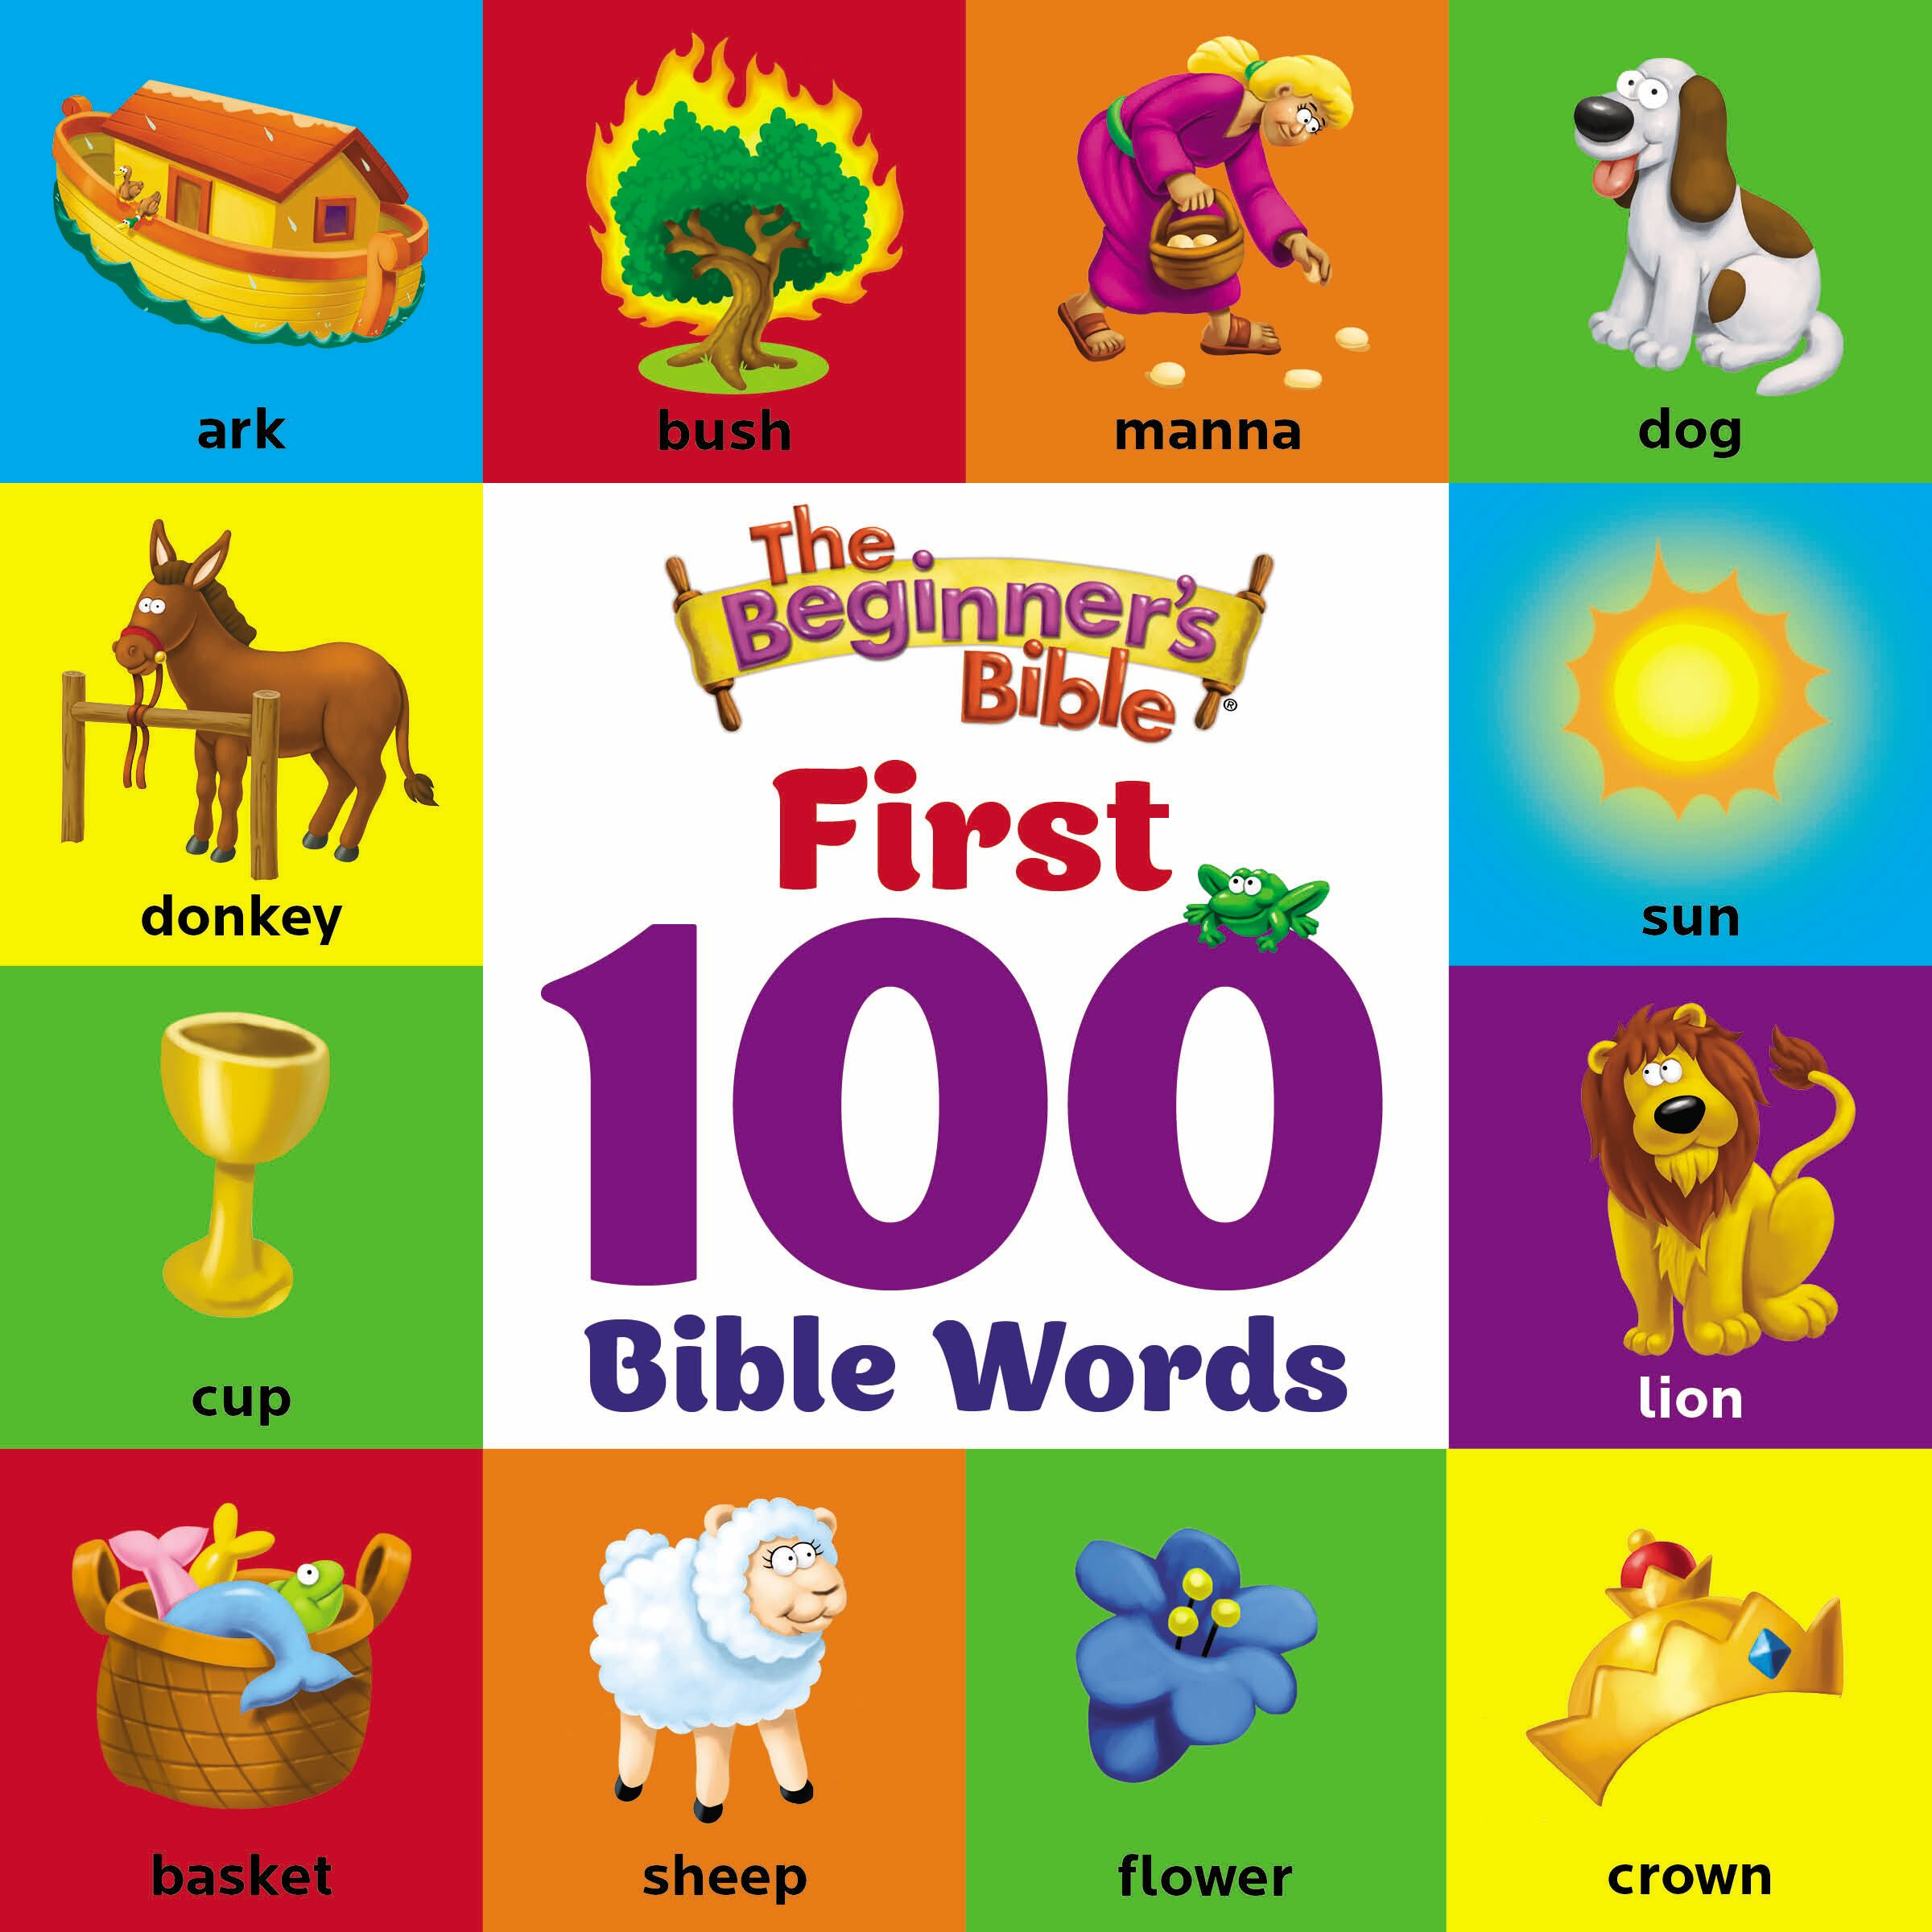 The Beginner's Bible First 100 Bible Words cover